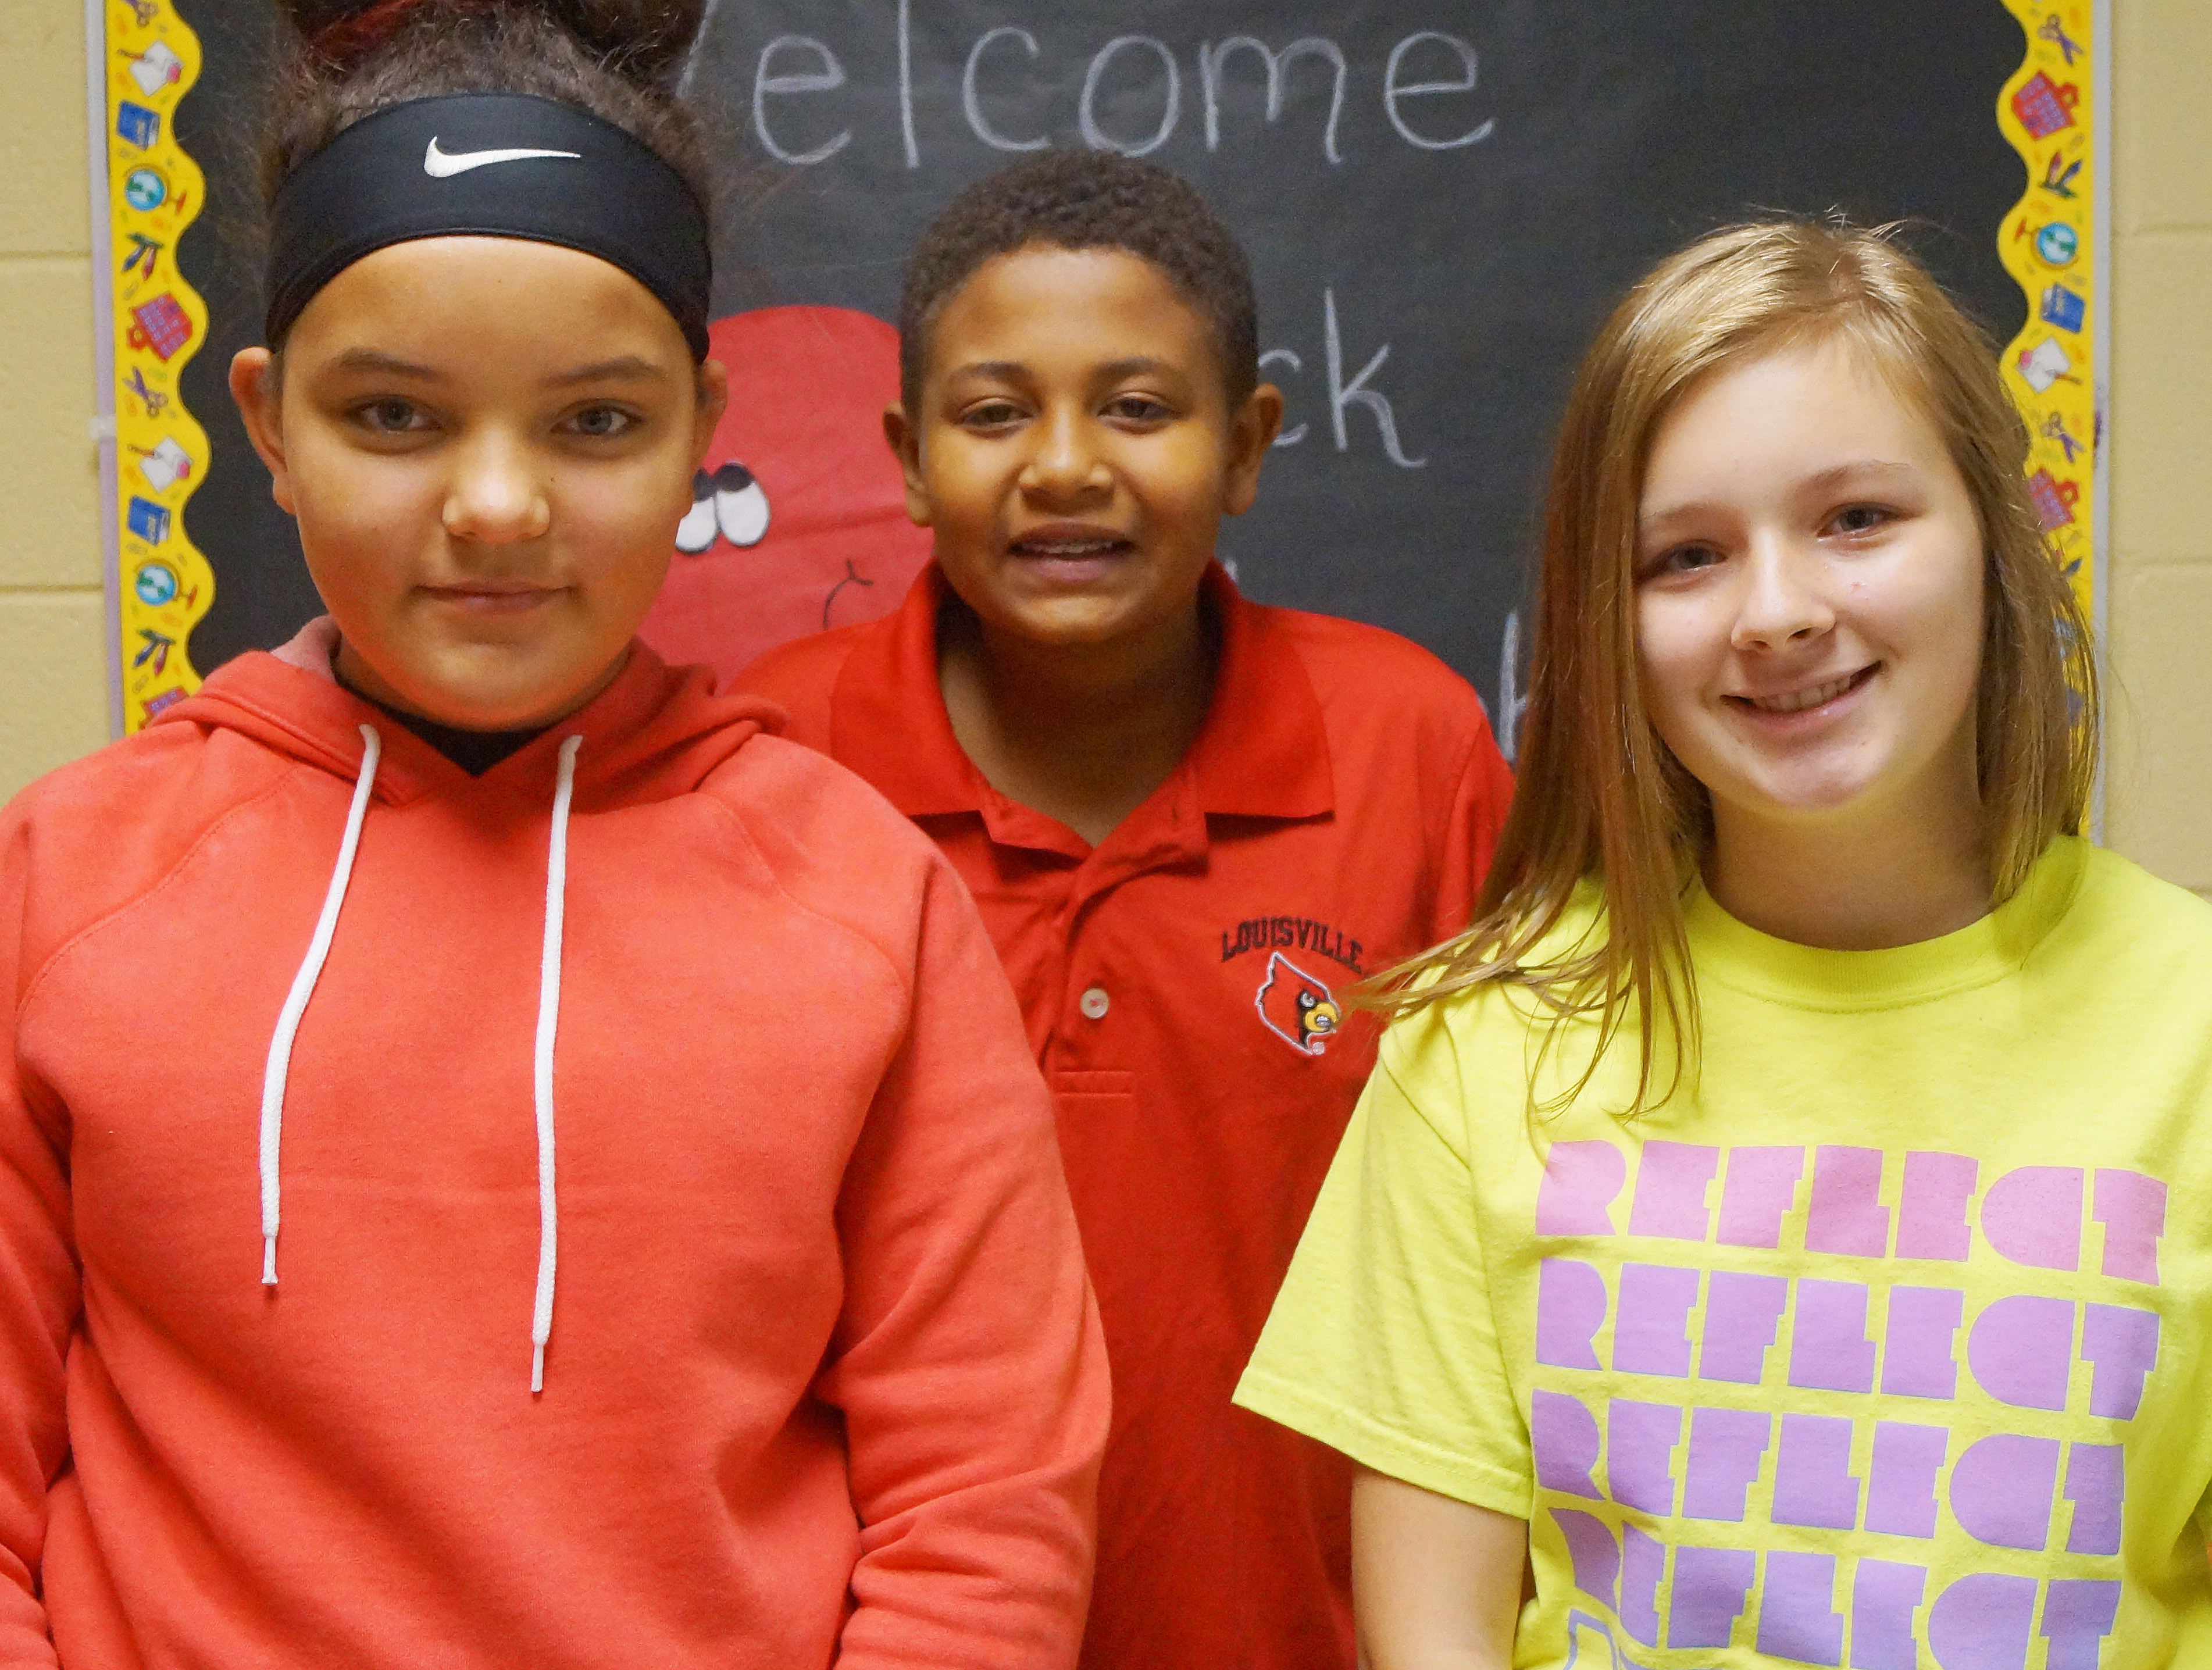 From left are sixth-grader Gracie Taylor, seventh-grader Ronin Smith and eighth-grader Serenity Ford.